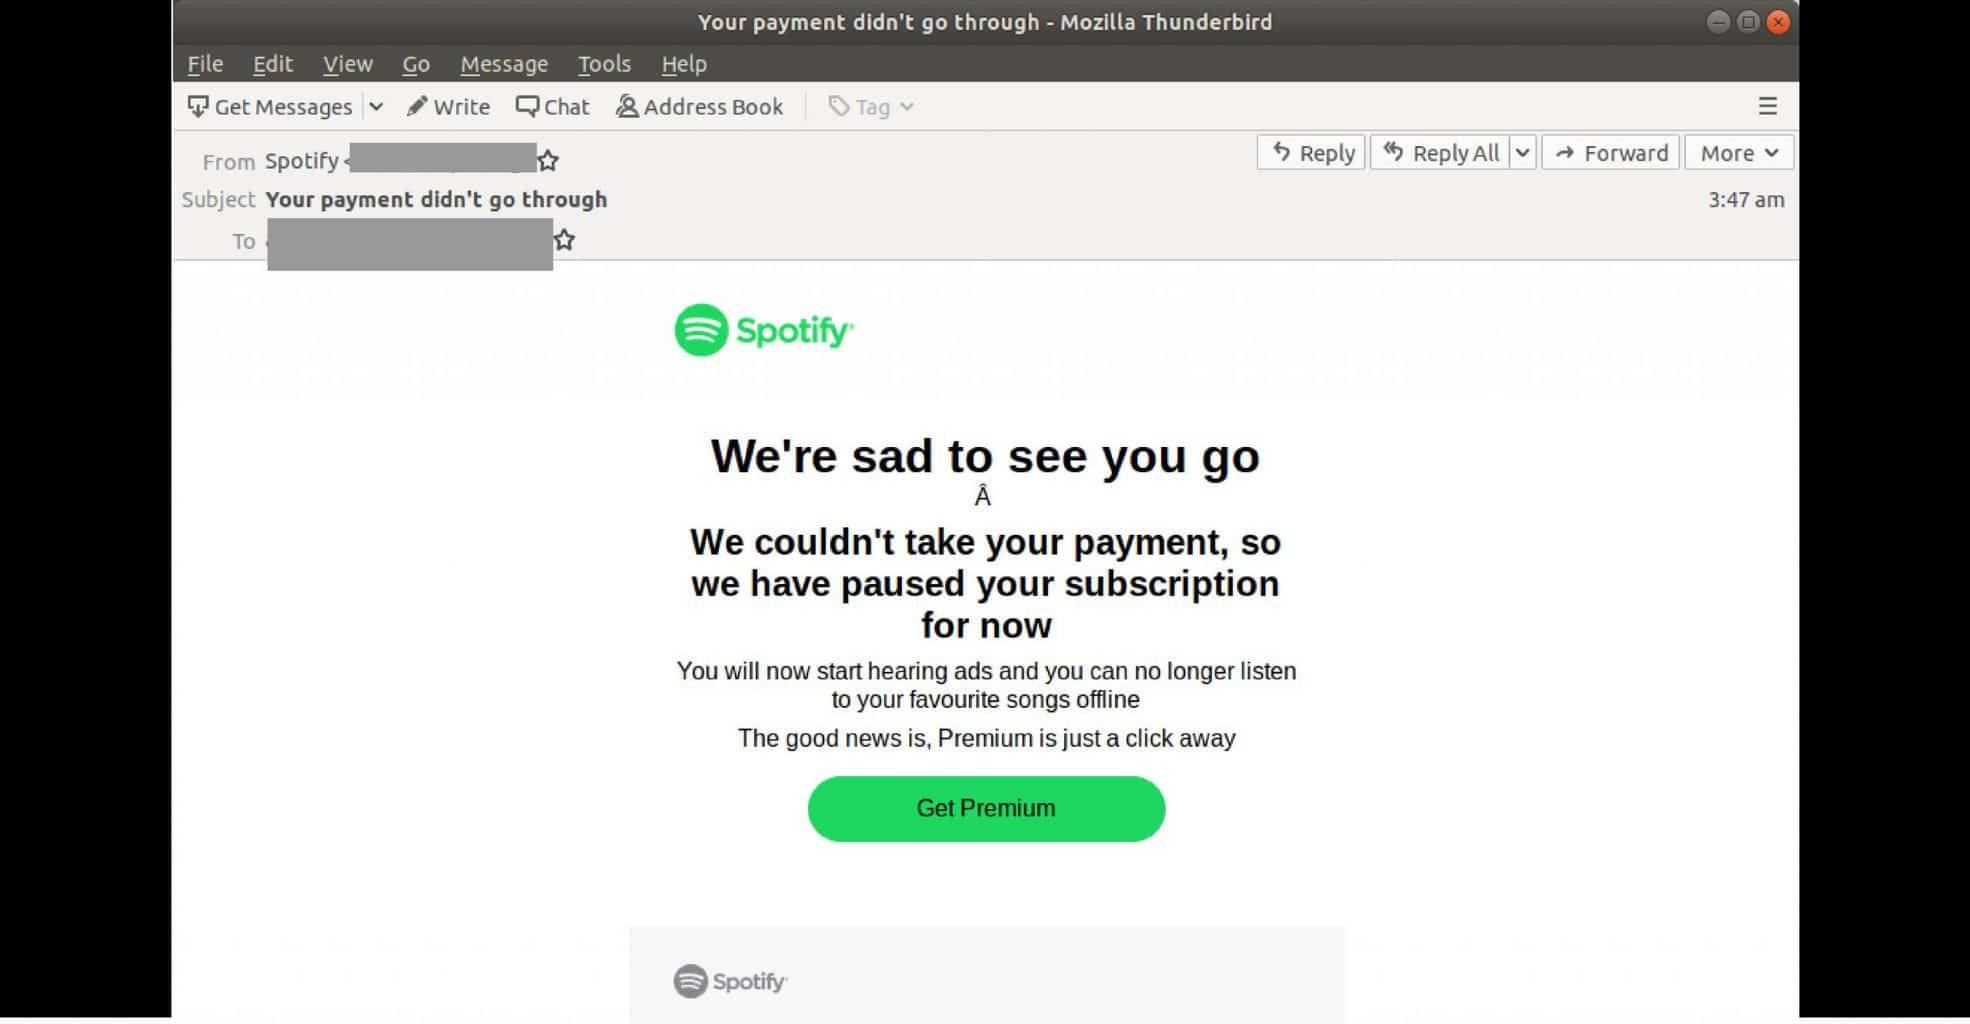 Spotify Phishing Attack Attribution link: https://latesthackingnews.com/2019/12/09/the-spotify-phishing-attack-that-tricks-users-through-fake-failed-payment-notices/